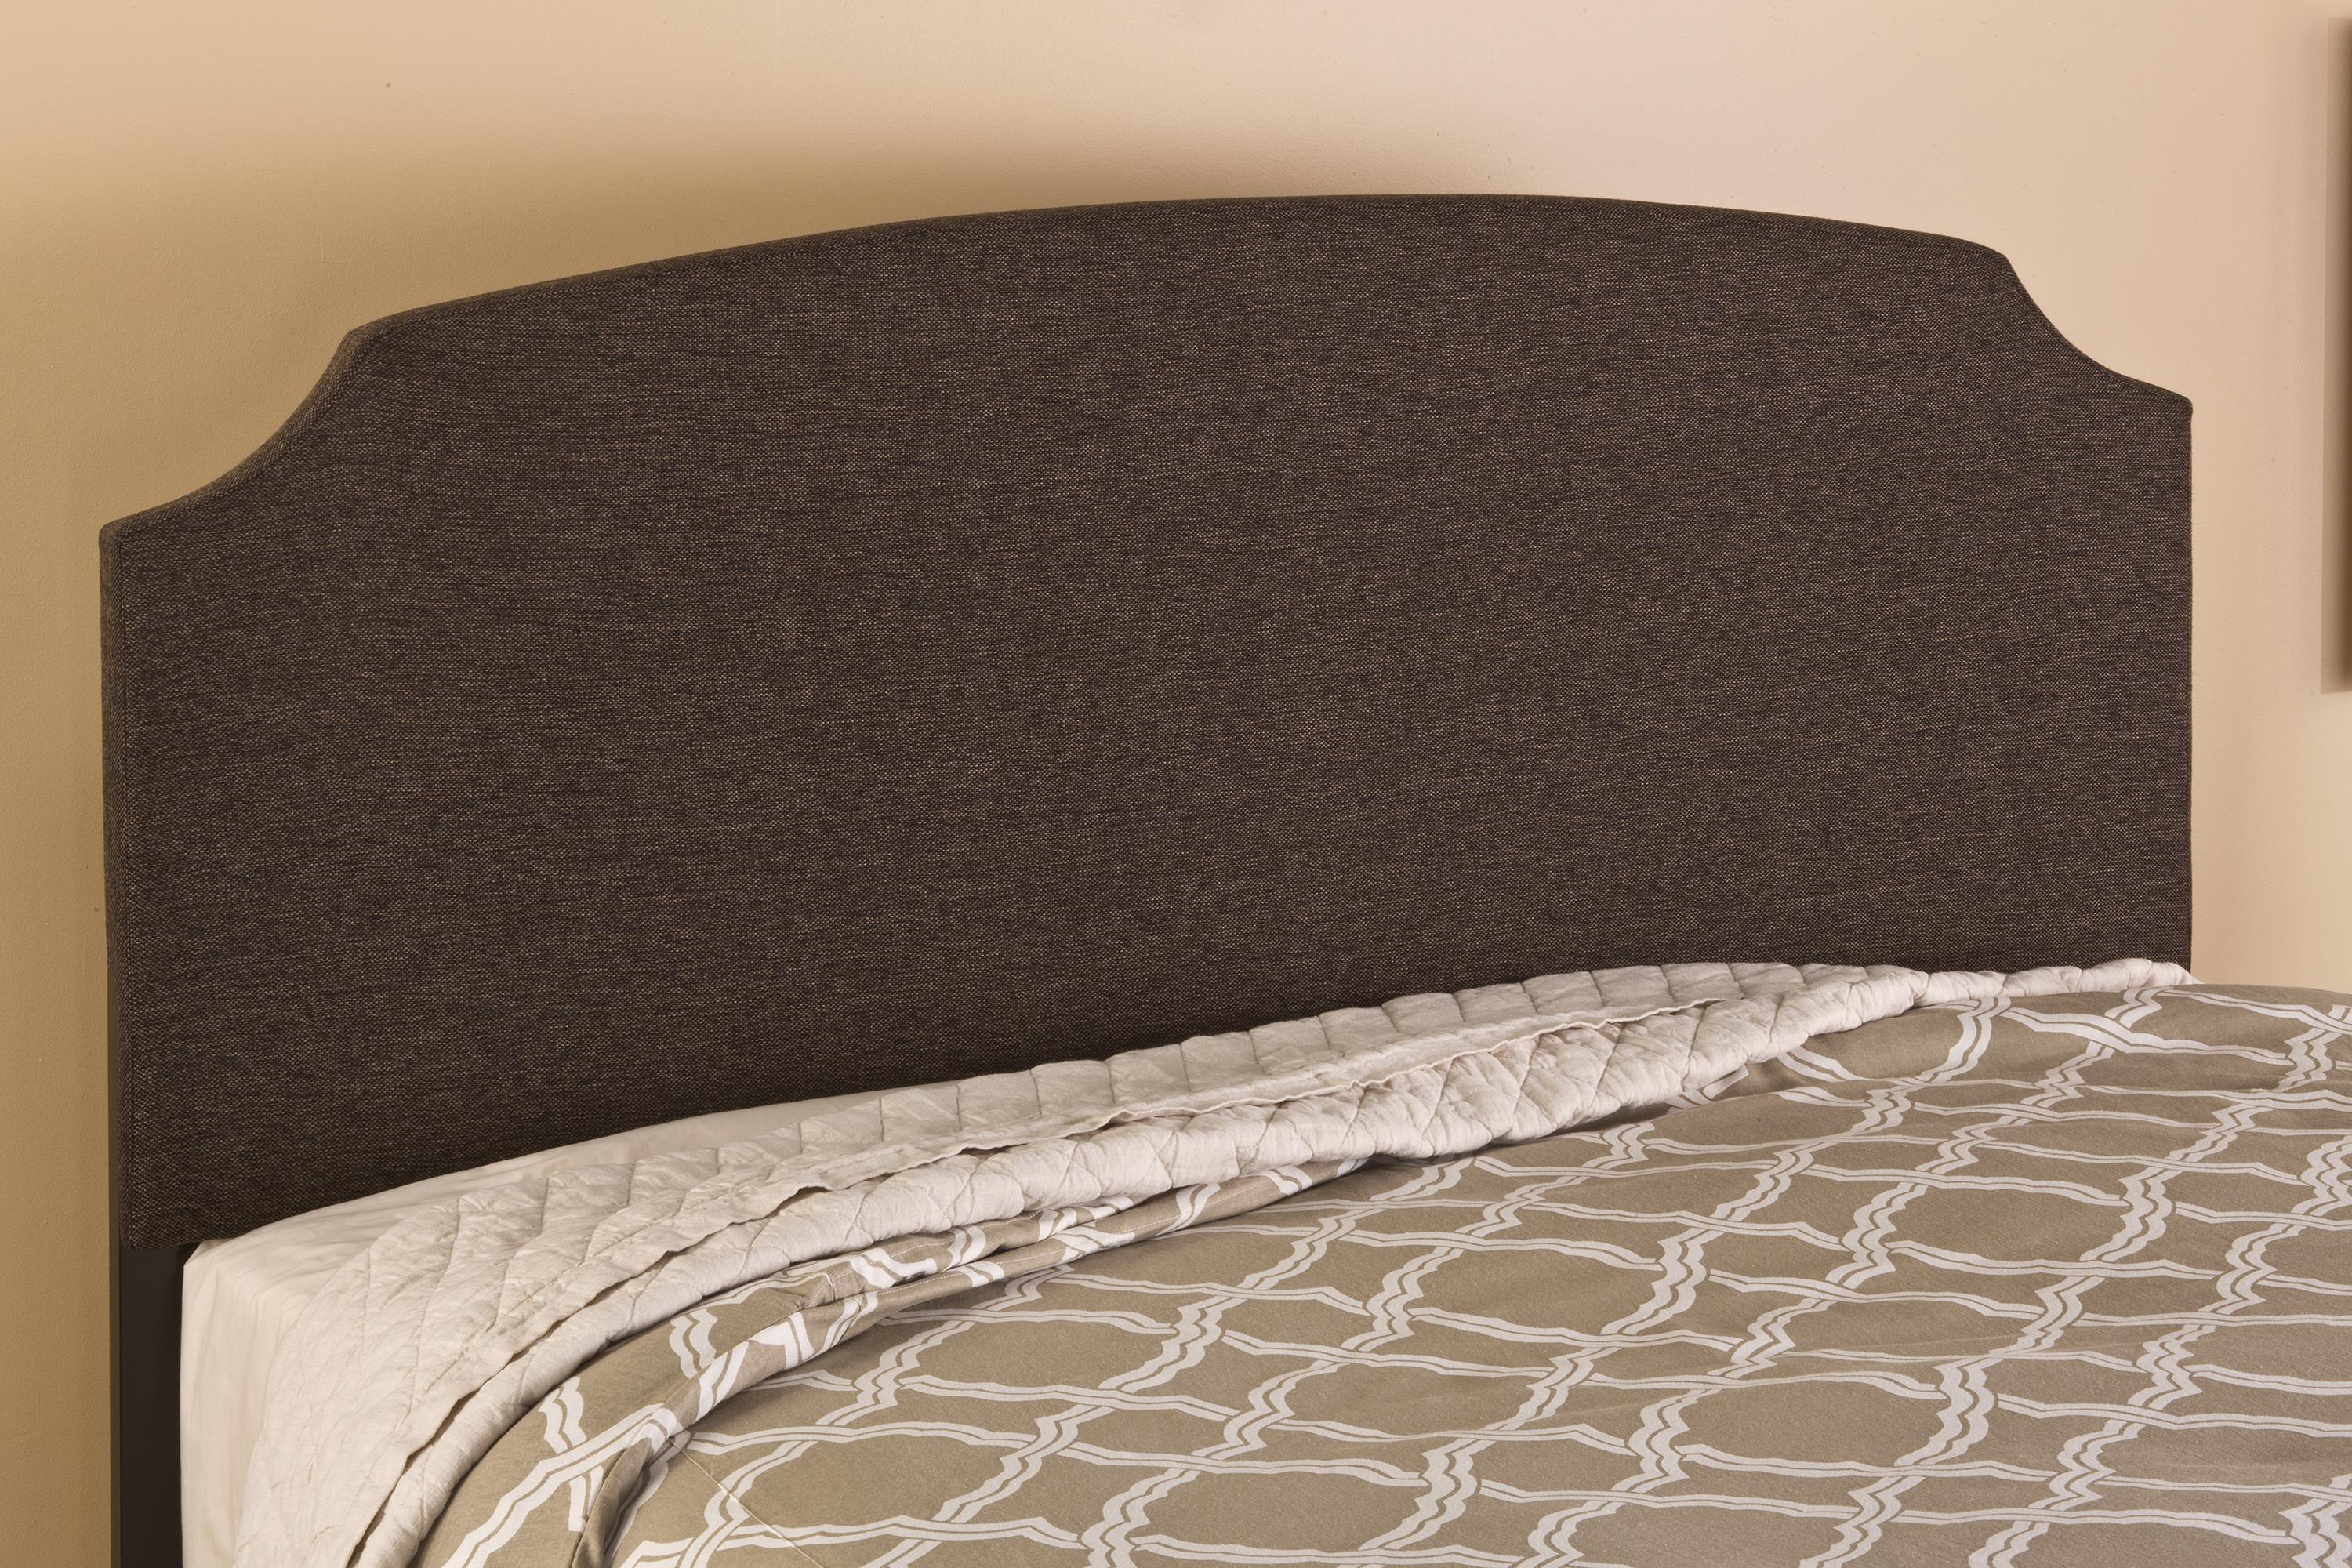 Hillsdale Upholstered Beds Lawler Full Headboard with Rails - Item Number: 1296HFRL